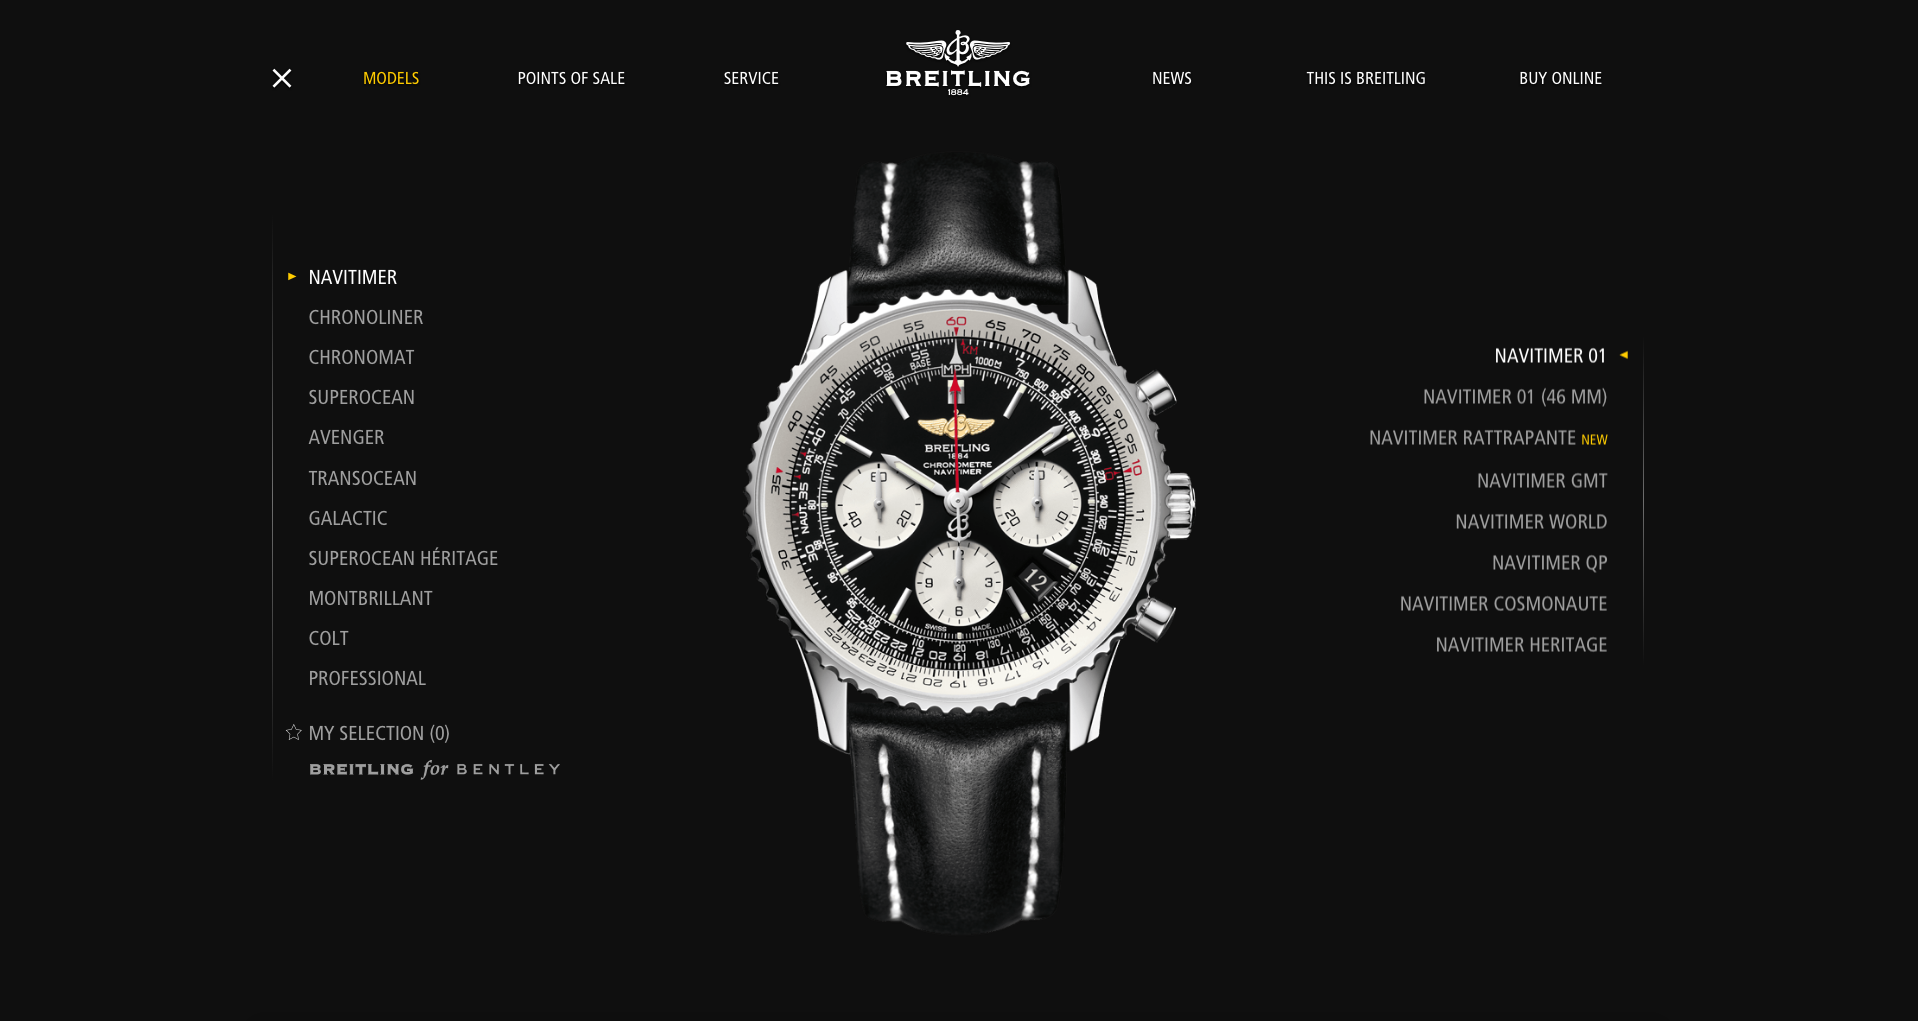 Breitling decided on a black background to make their watch designs stand out.